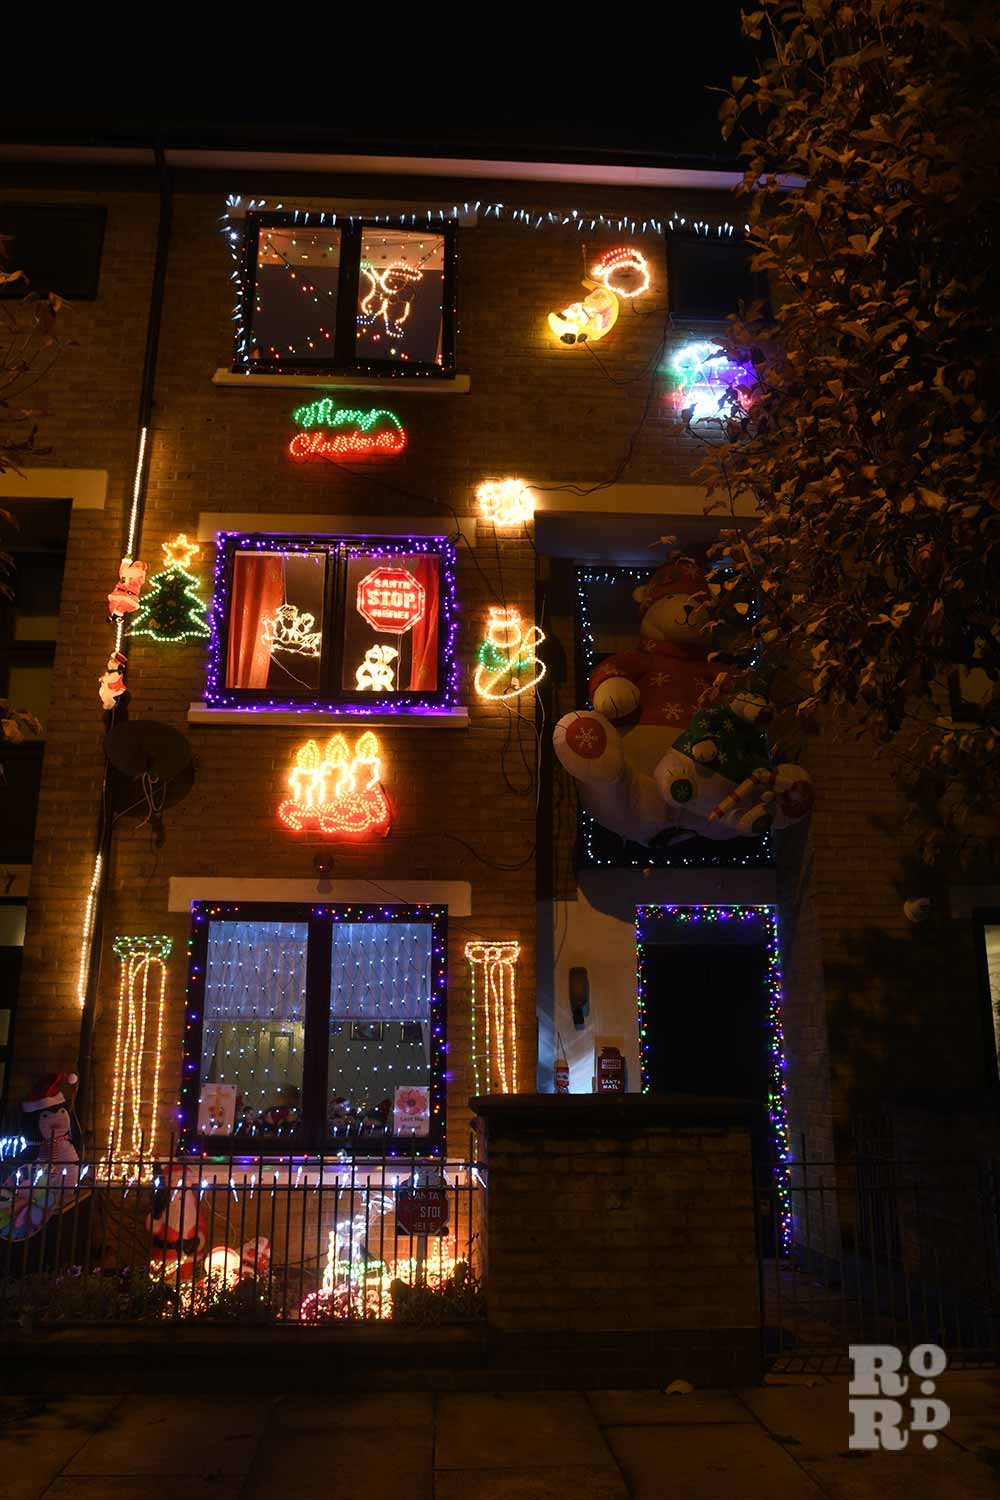 A house in Bow completely decorated in festive lights and figures by photographer Phil Verney